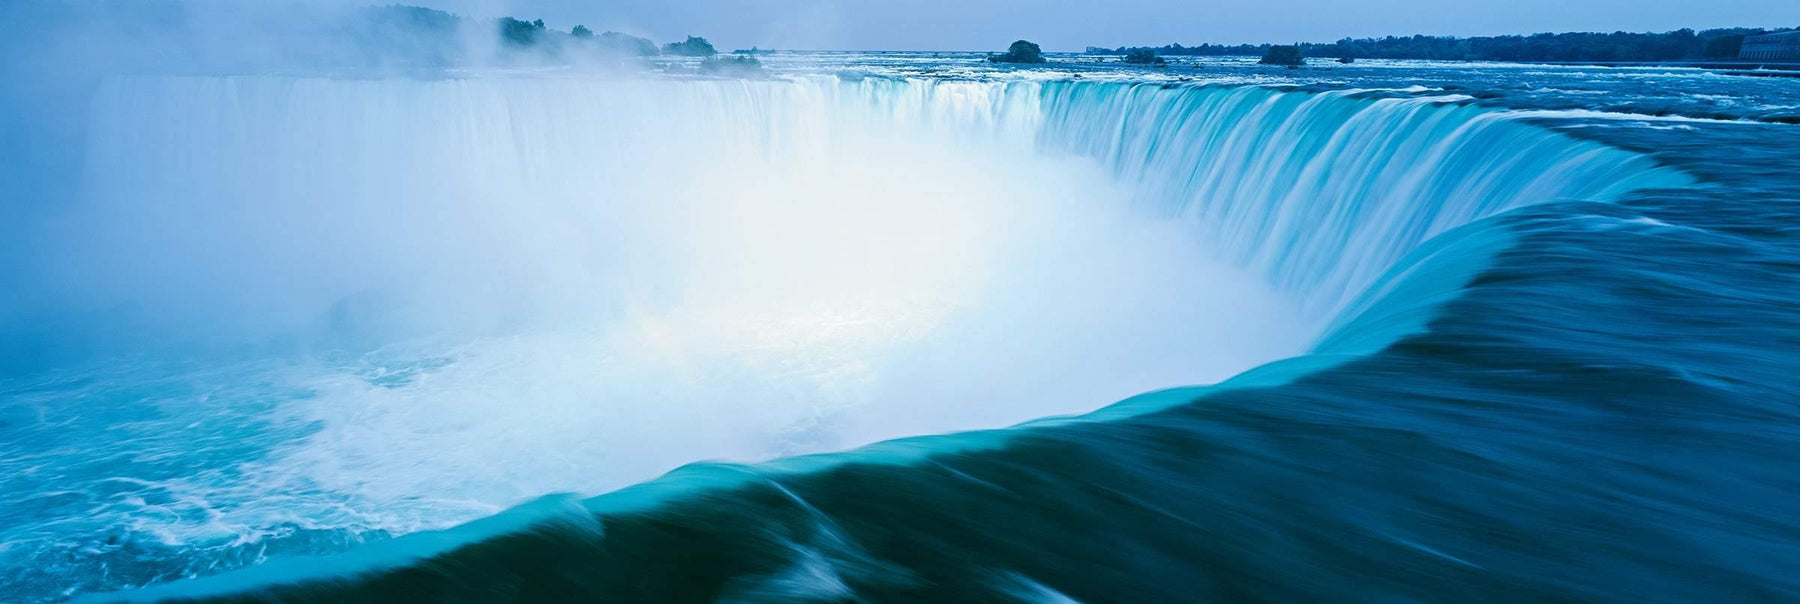 Giant turquoise waterfalls forming a horseshoes shape at Niagara Falls New York